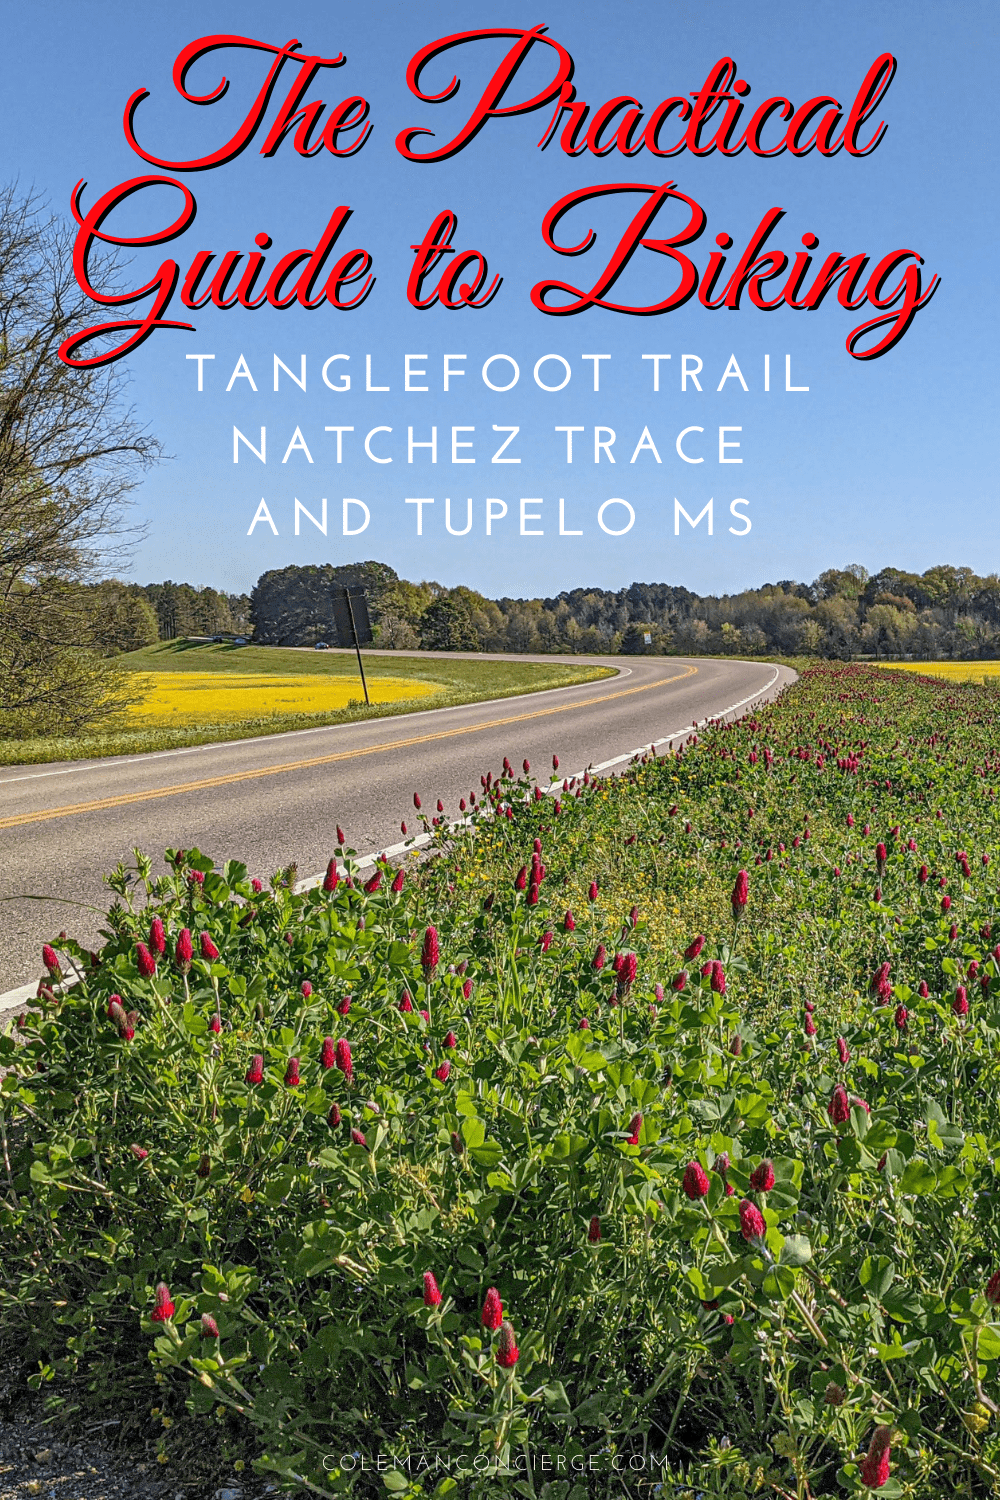 The Natchez Trace road and wildflowers